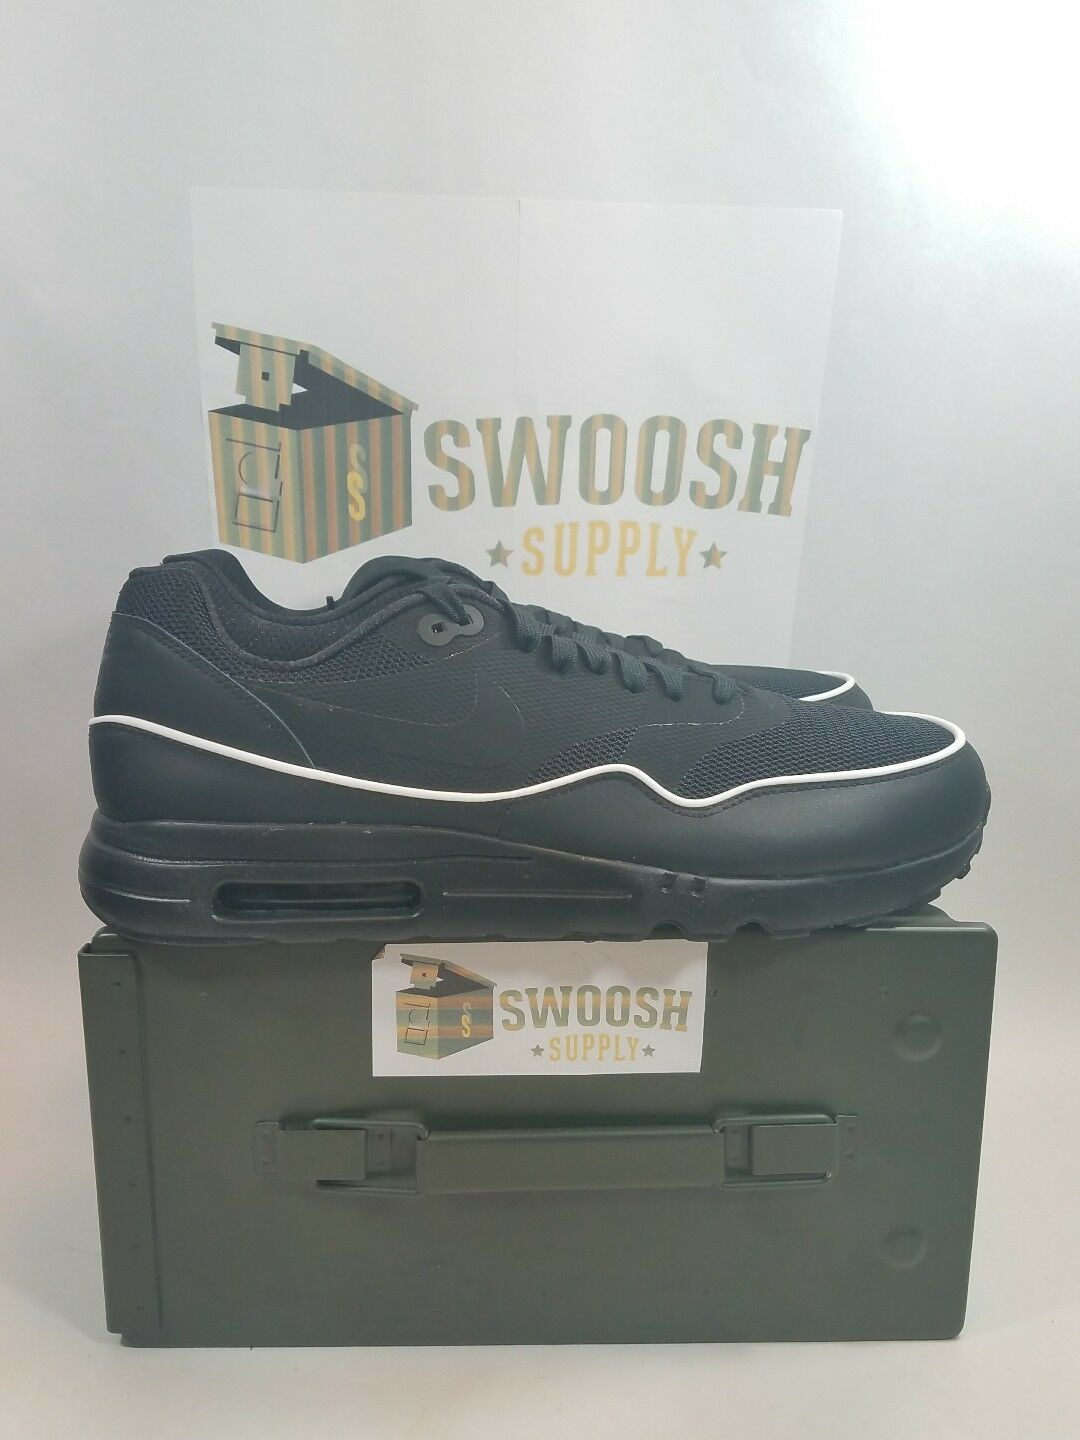 NIKE AIR MAX 1 ULTRA 006 2.0 ESSENTIAL BLACK 875679 006 ULTRA SZ 12 FREE AIR MAX fd45e2